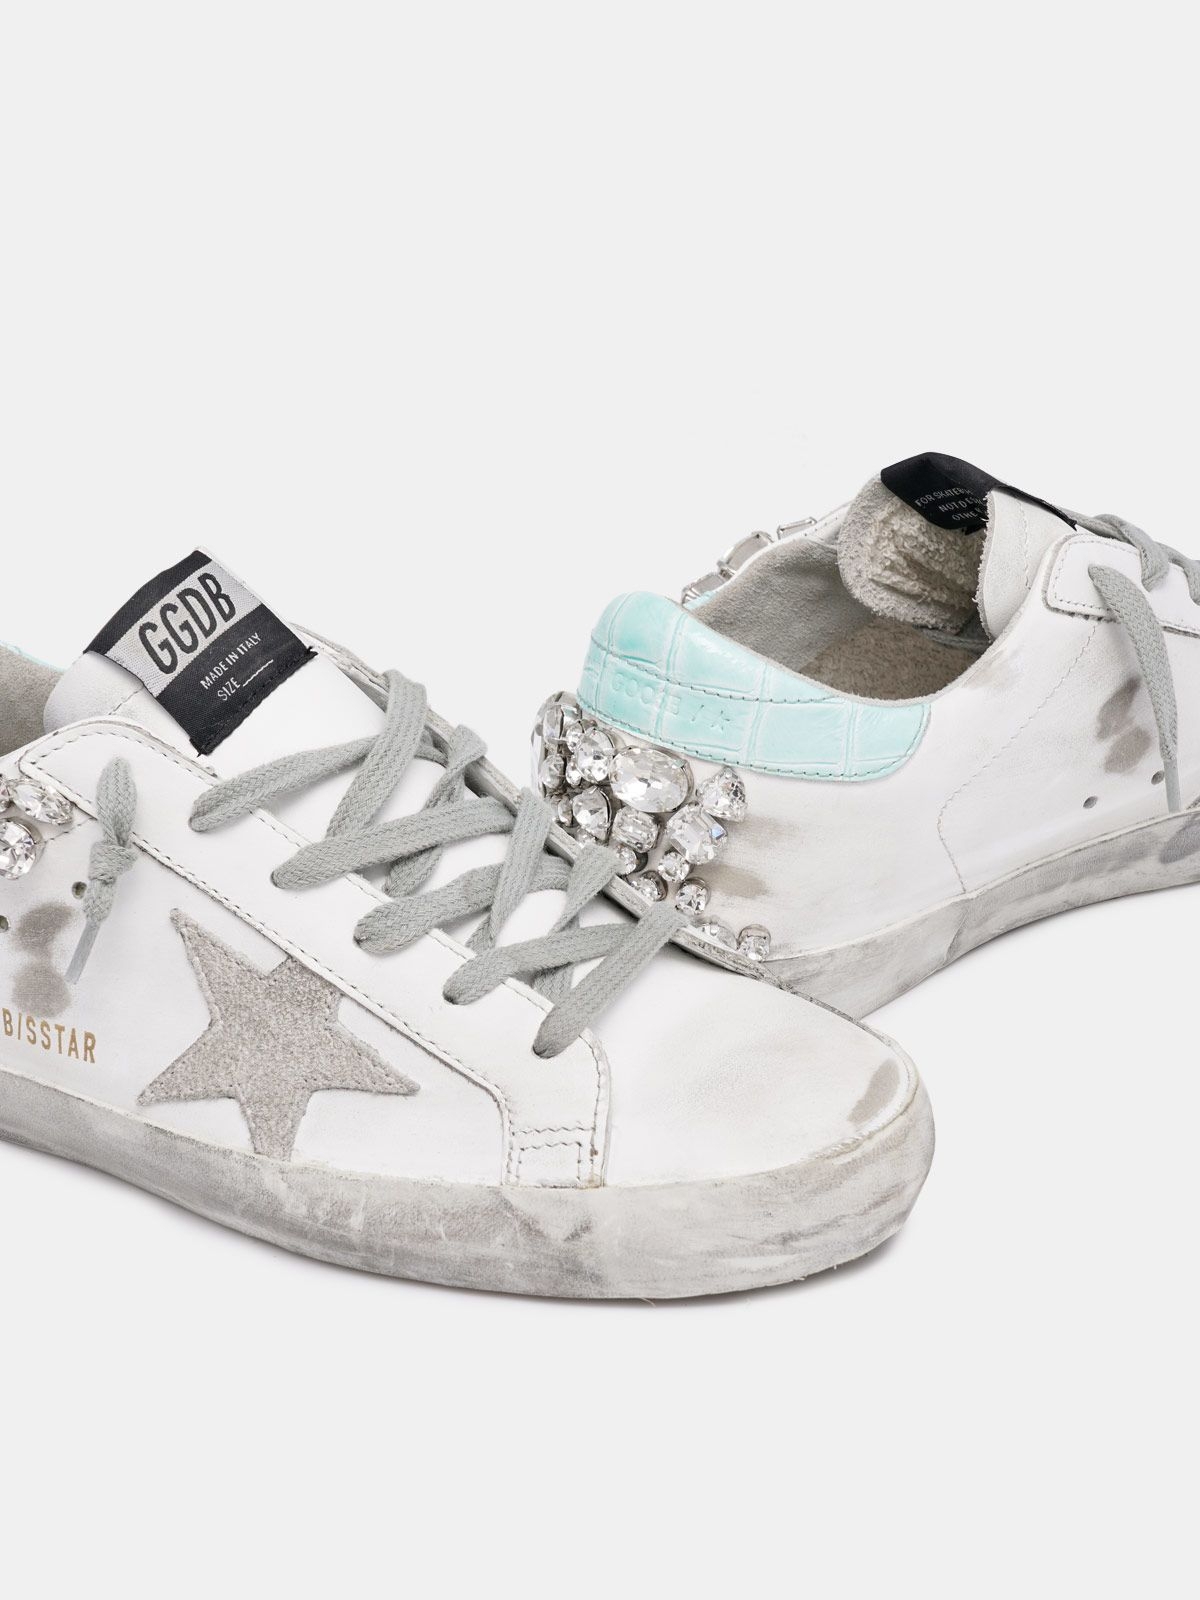 Golden Goose - Sneakers Super-Star con cristalli sul retro   in